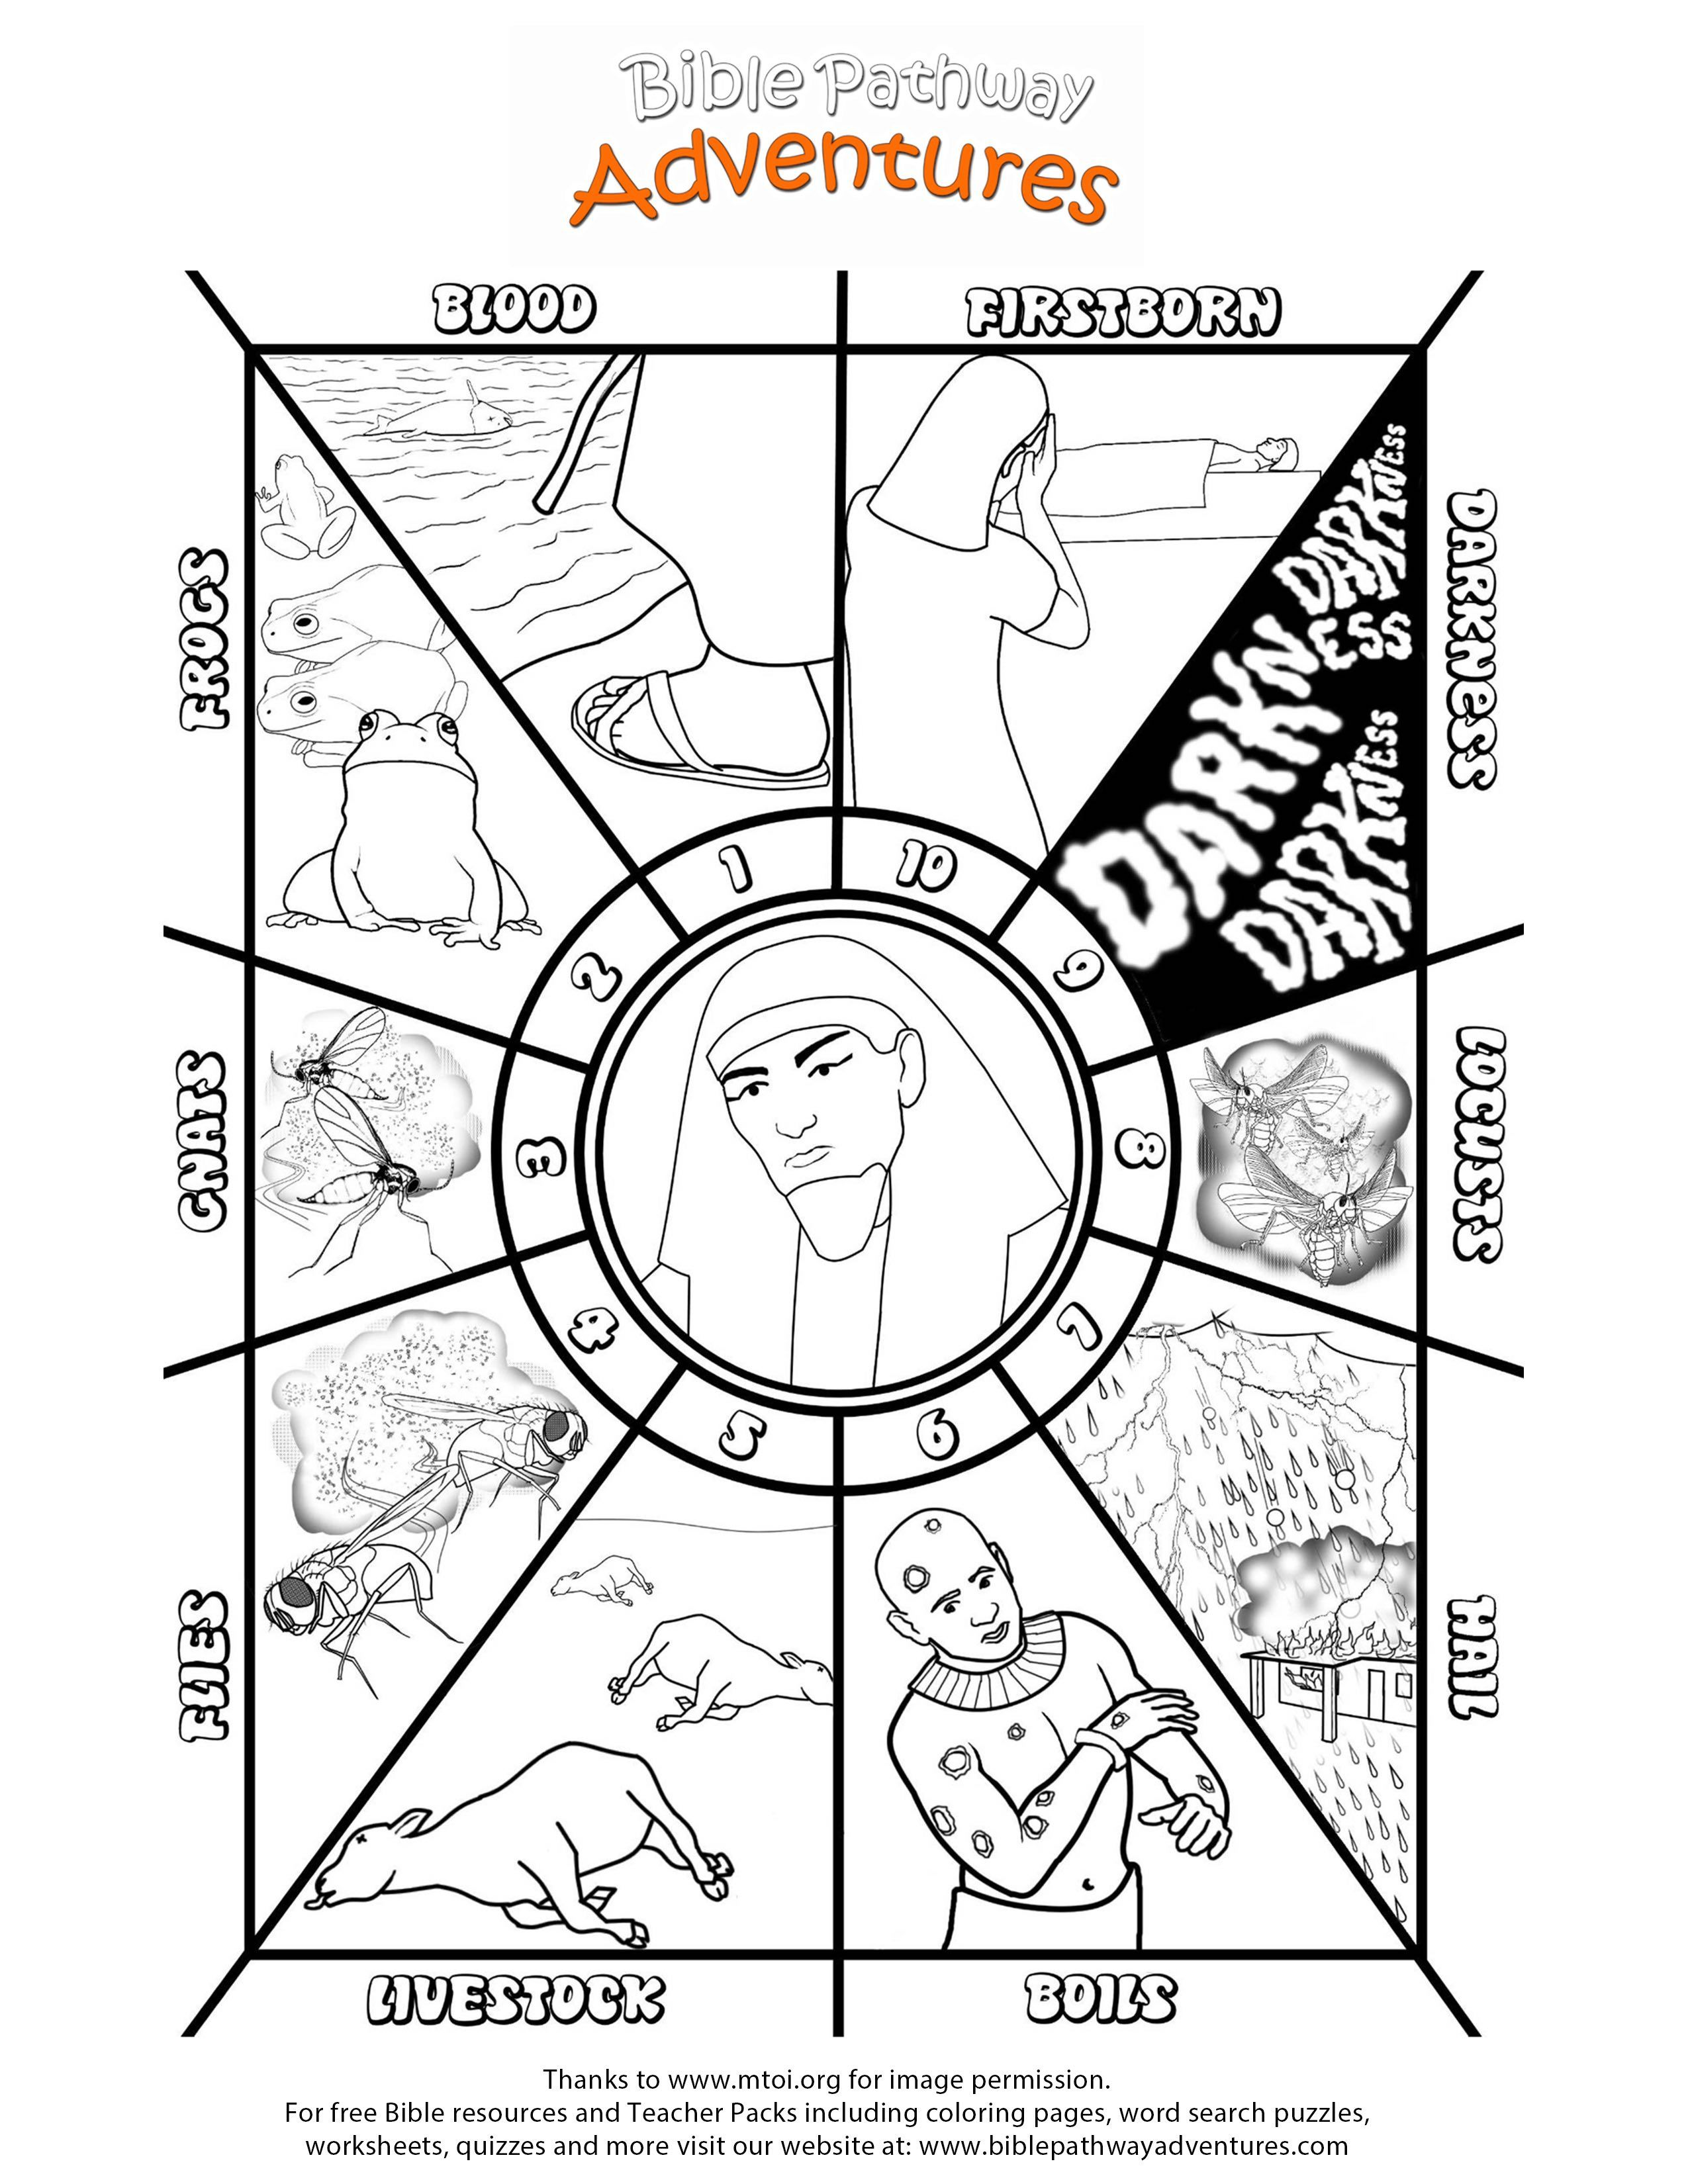 10 plagues of egypt coloring pages free printable coloring pages ten plagues coloring home 10 of coloring egypt plagues pages